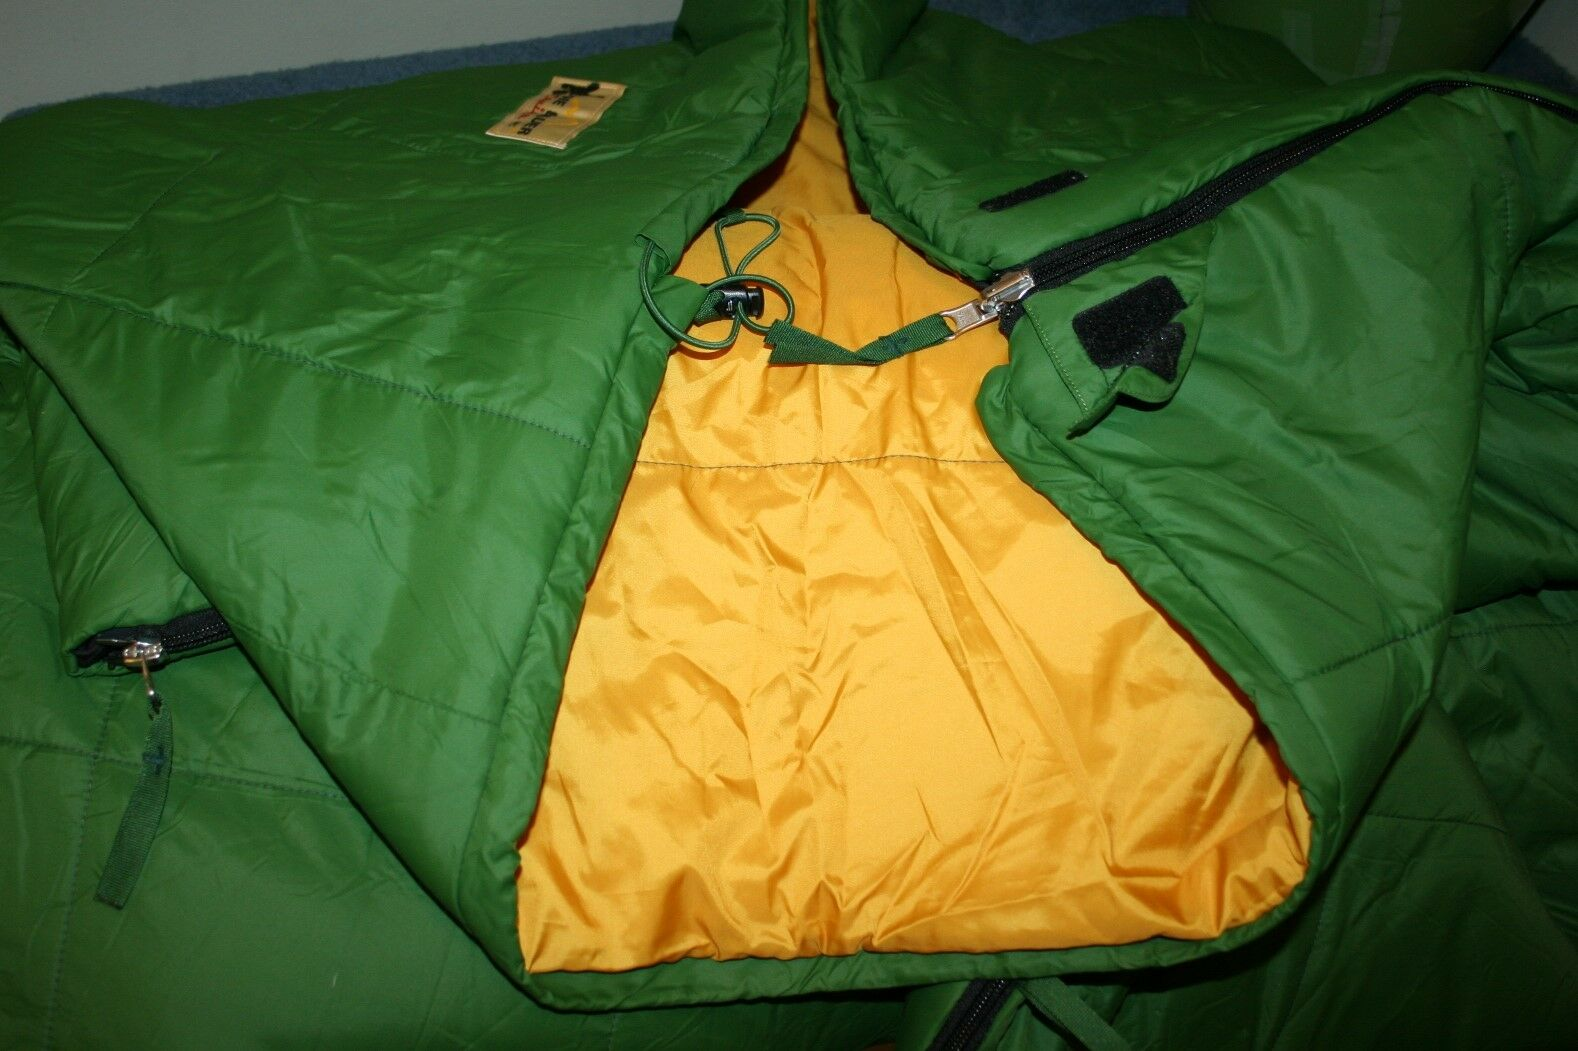 EDDIE BAUER CRUISER SLEEPING BAG GREEN ZIP UP 40 DEGREES F 78X33 78  BY 33